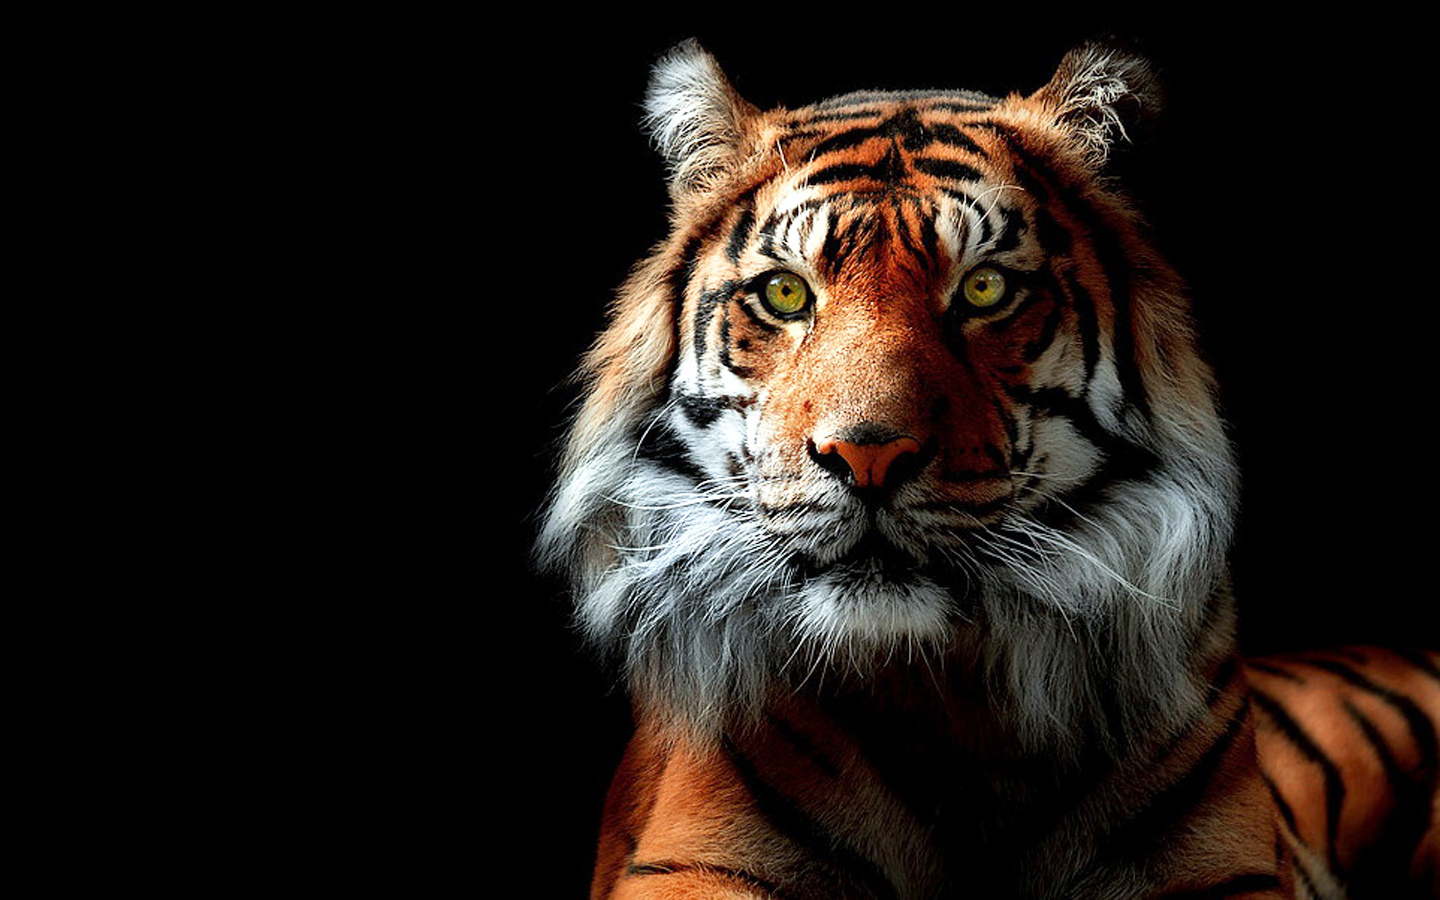 Tiger Wallpapers HD Group 1440x900